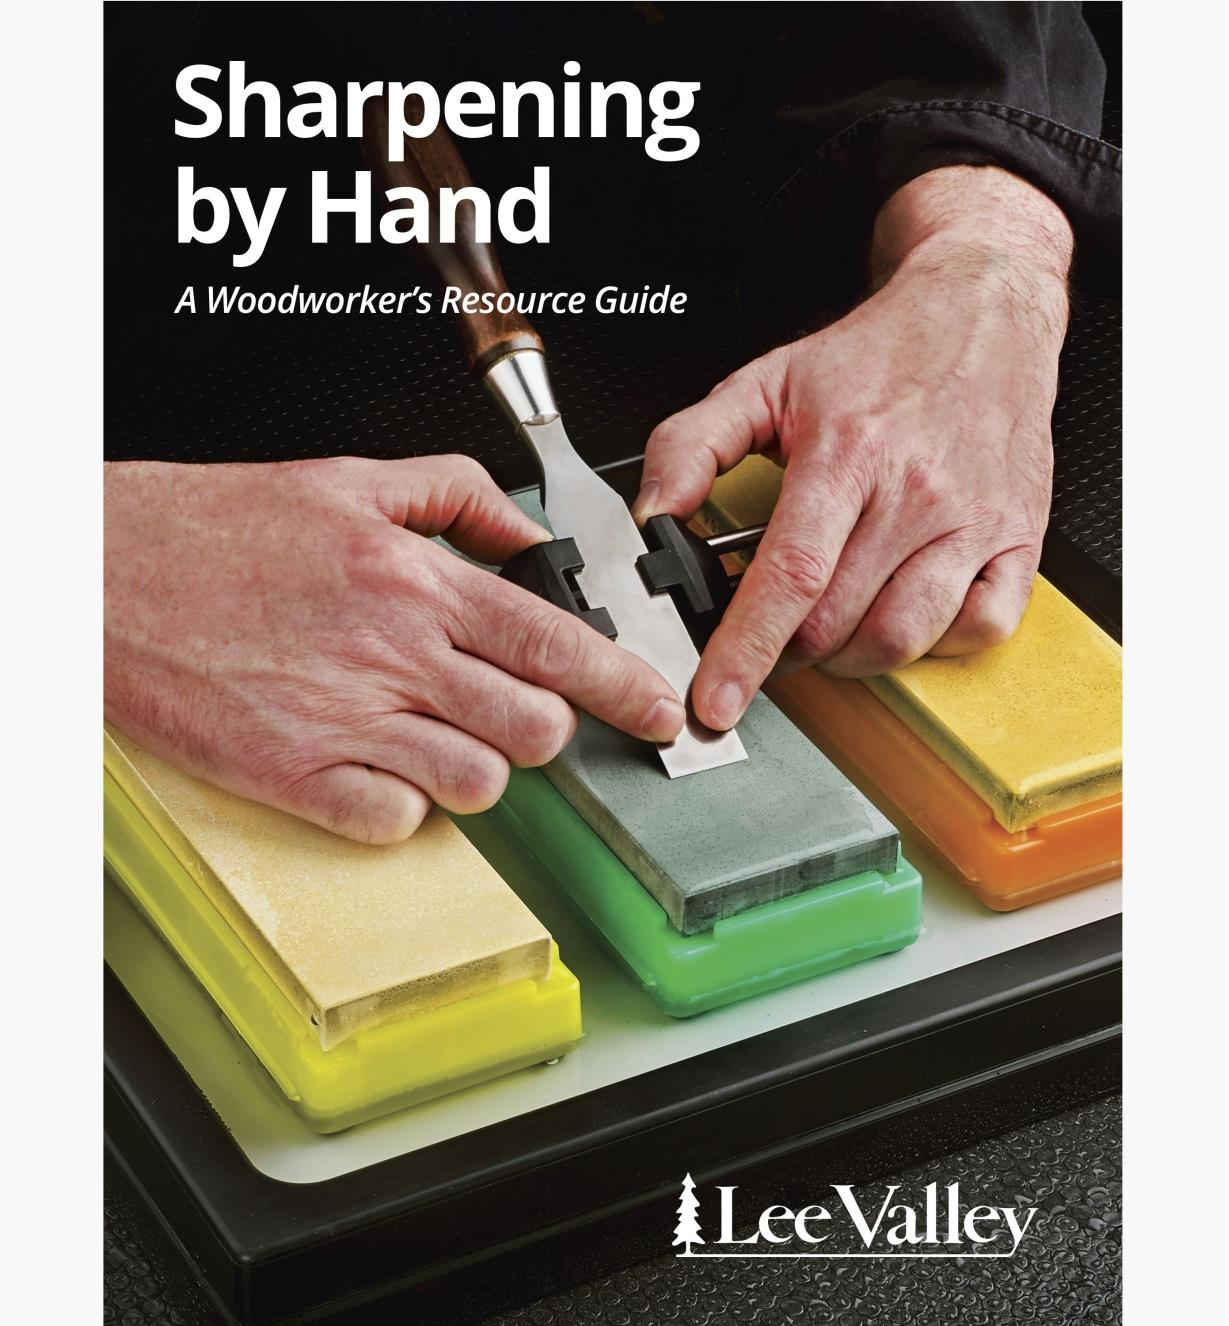 C0321SHA - Sharpening by Hand: A Woodworker's Resource Guide